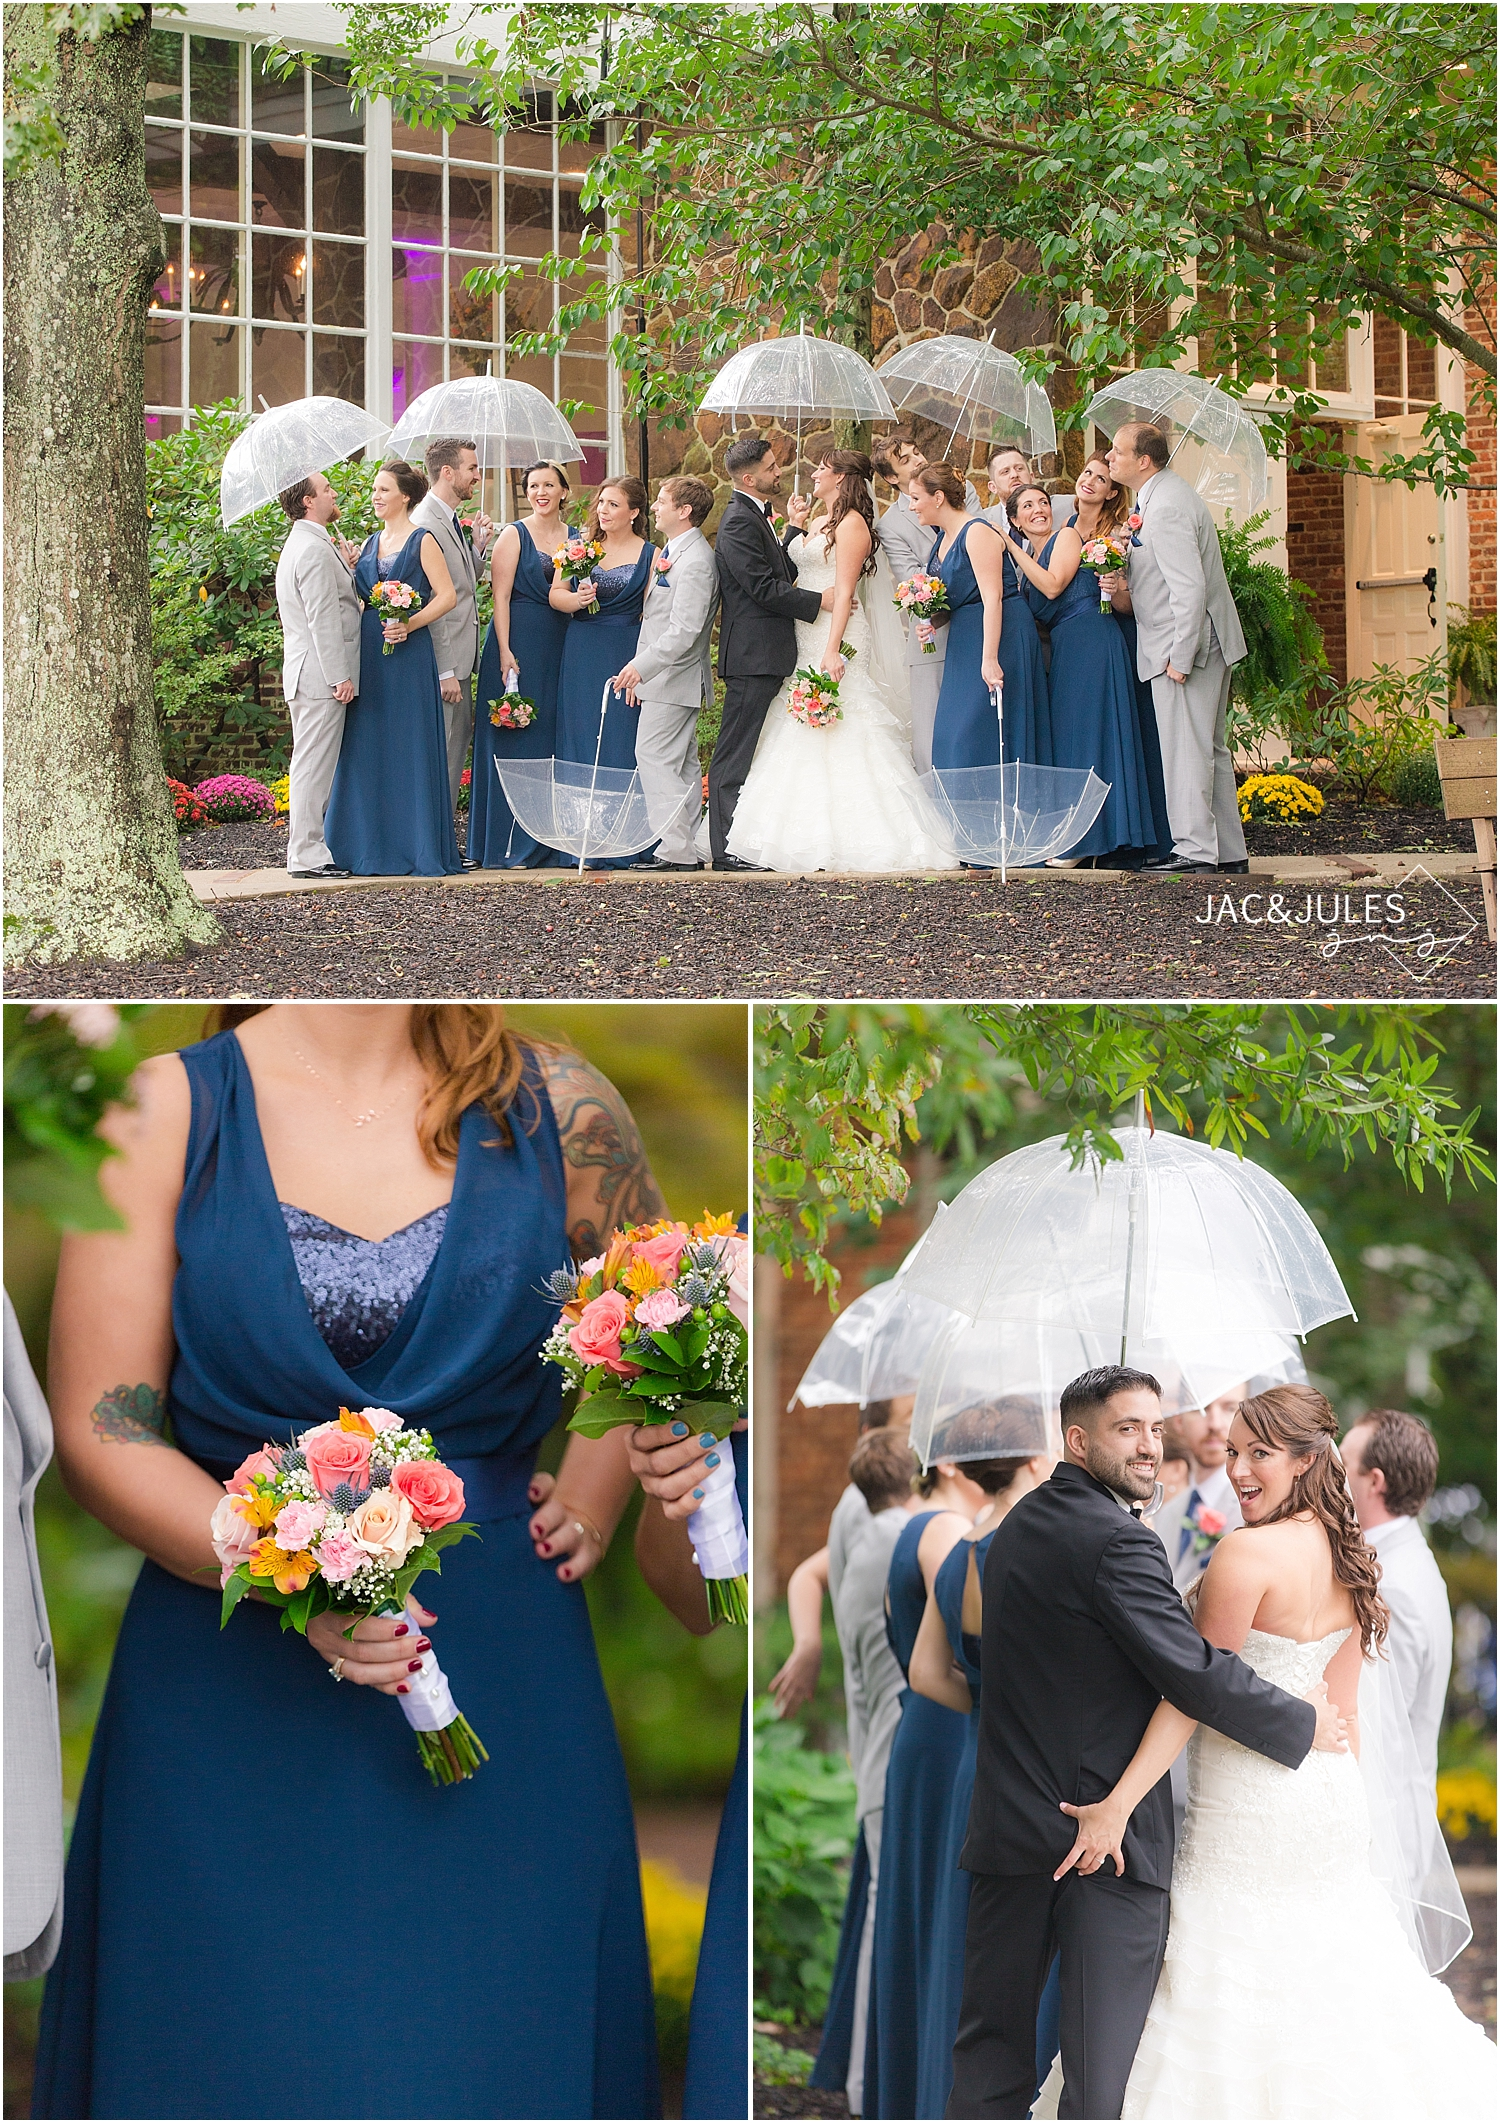 jacnjules photograph a rainy wedding with umbrellas in Smithville, NJ